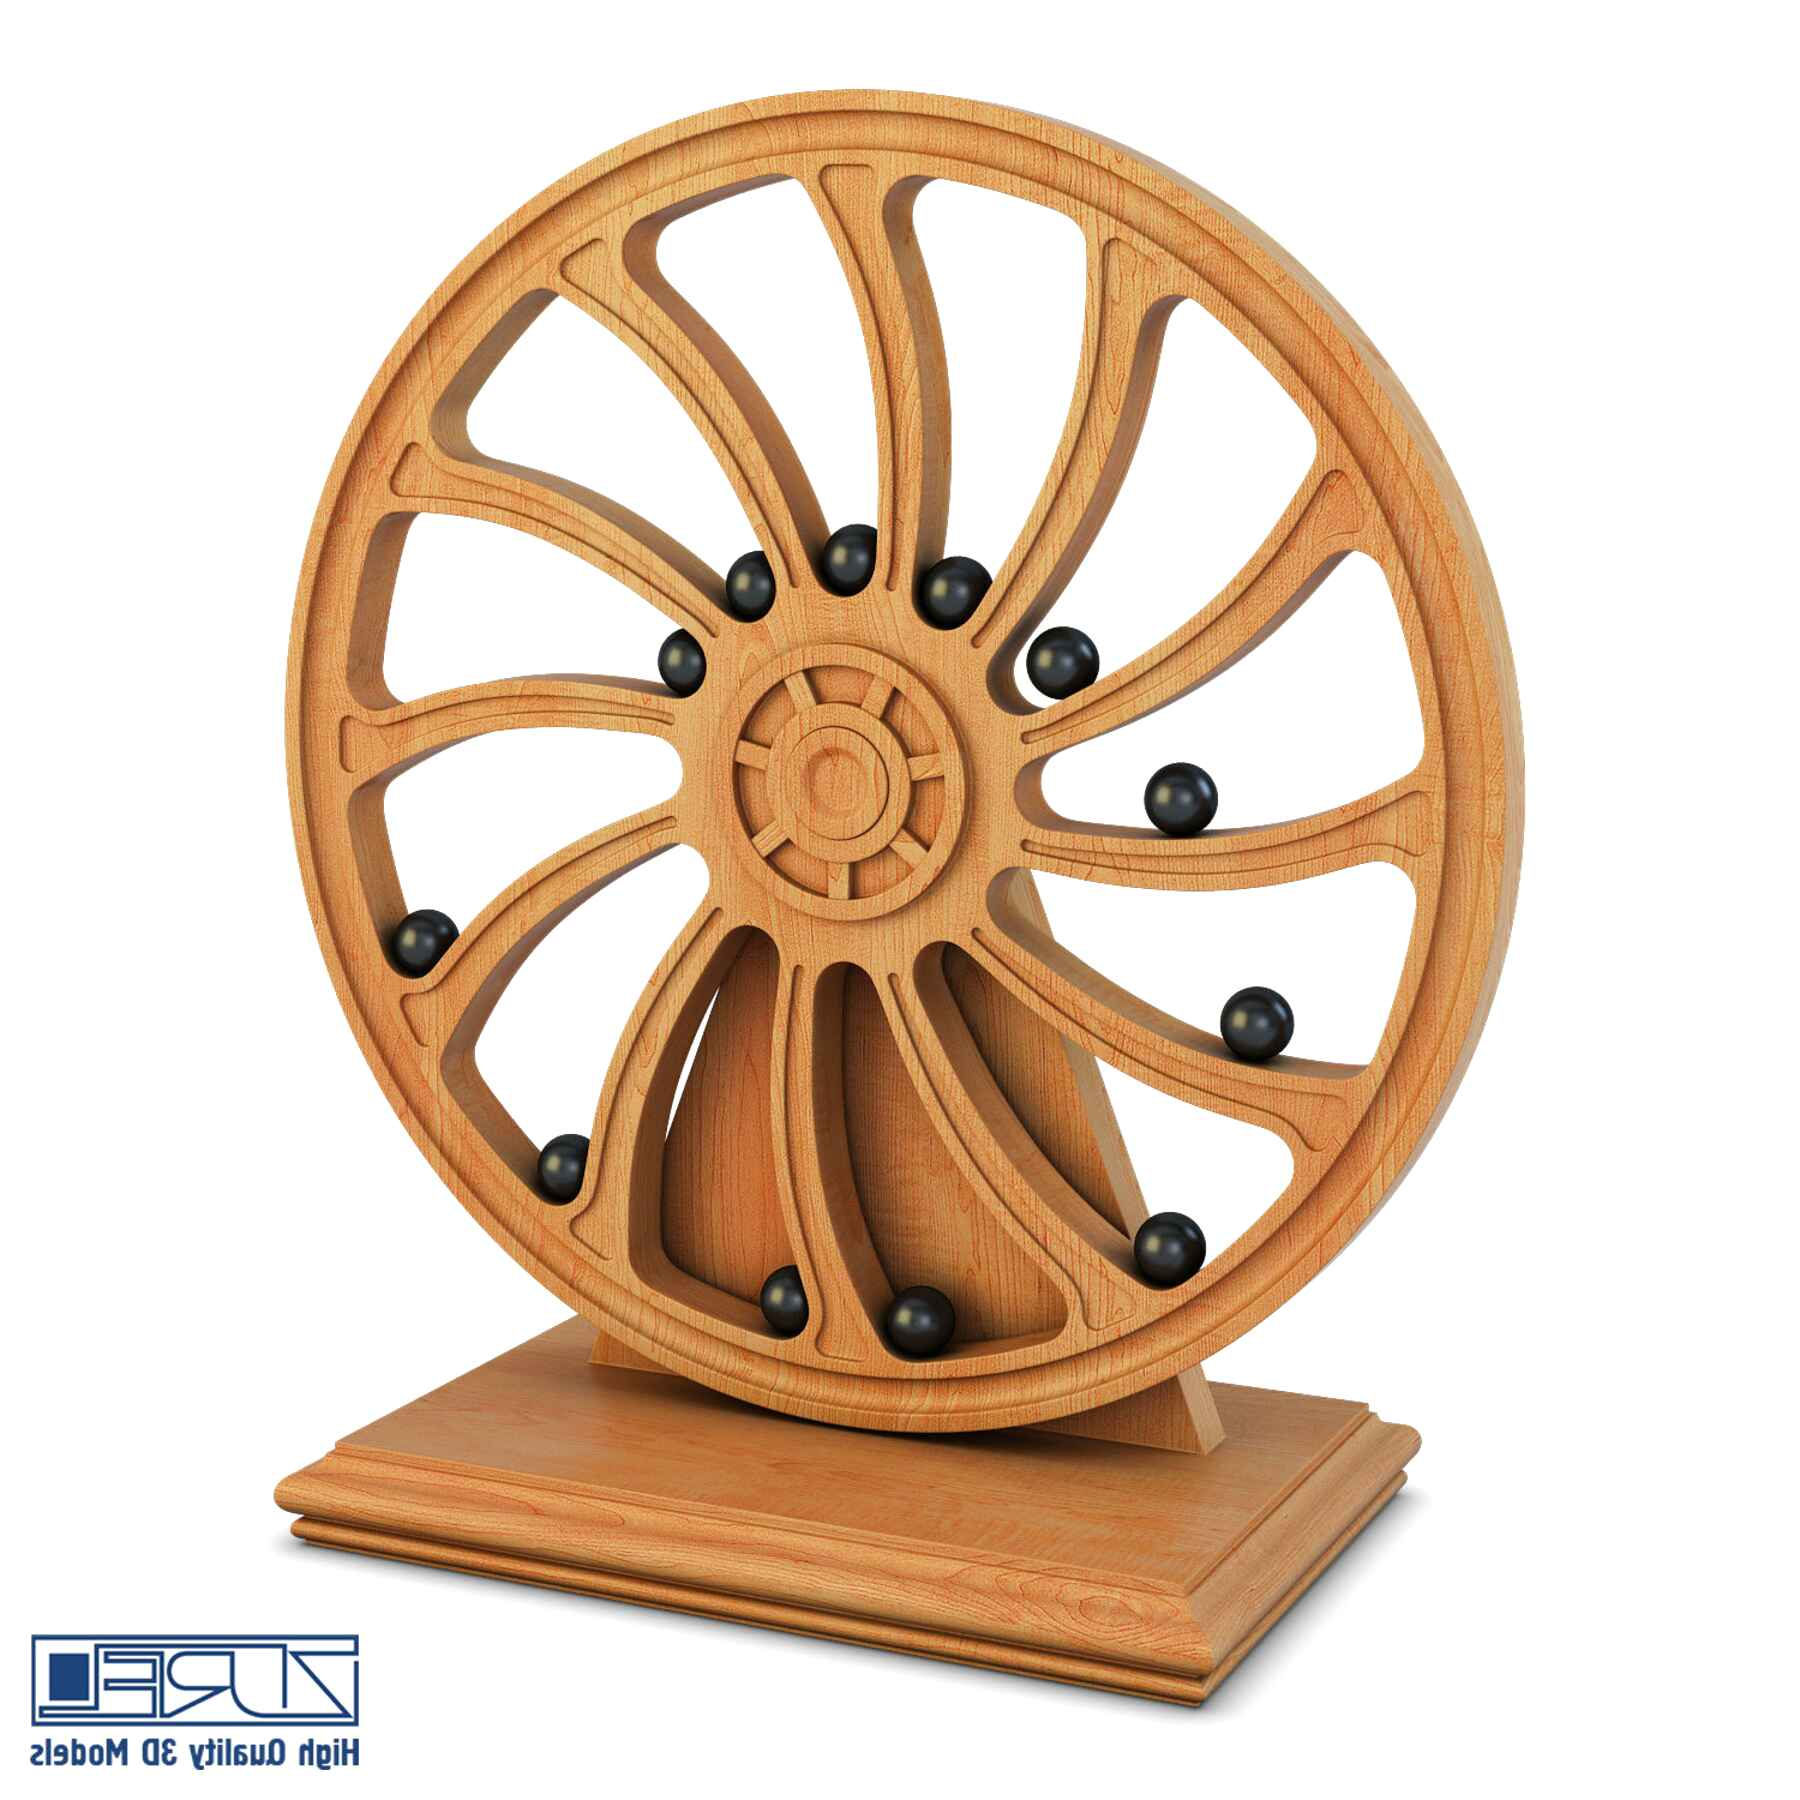 perpetual motion machine for sale